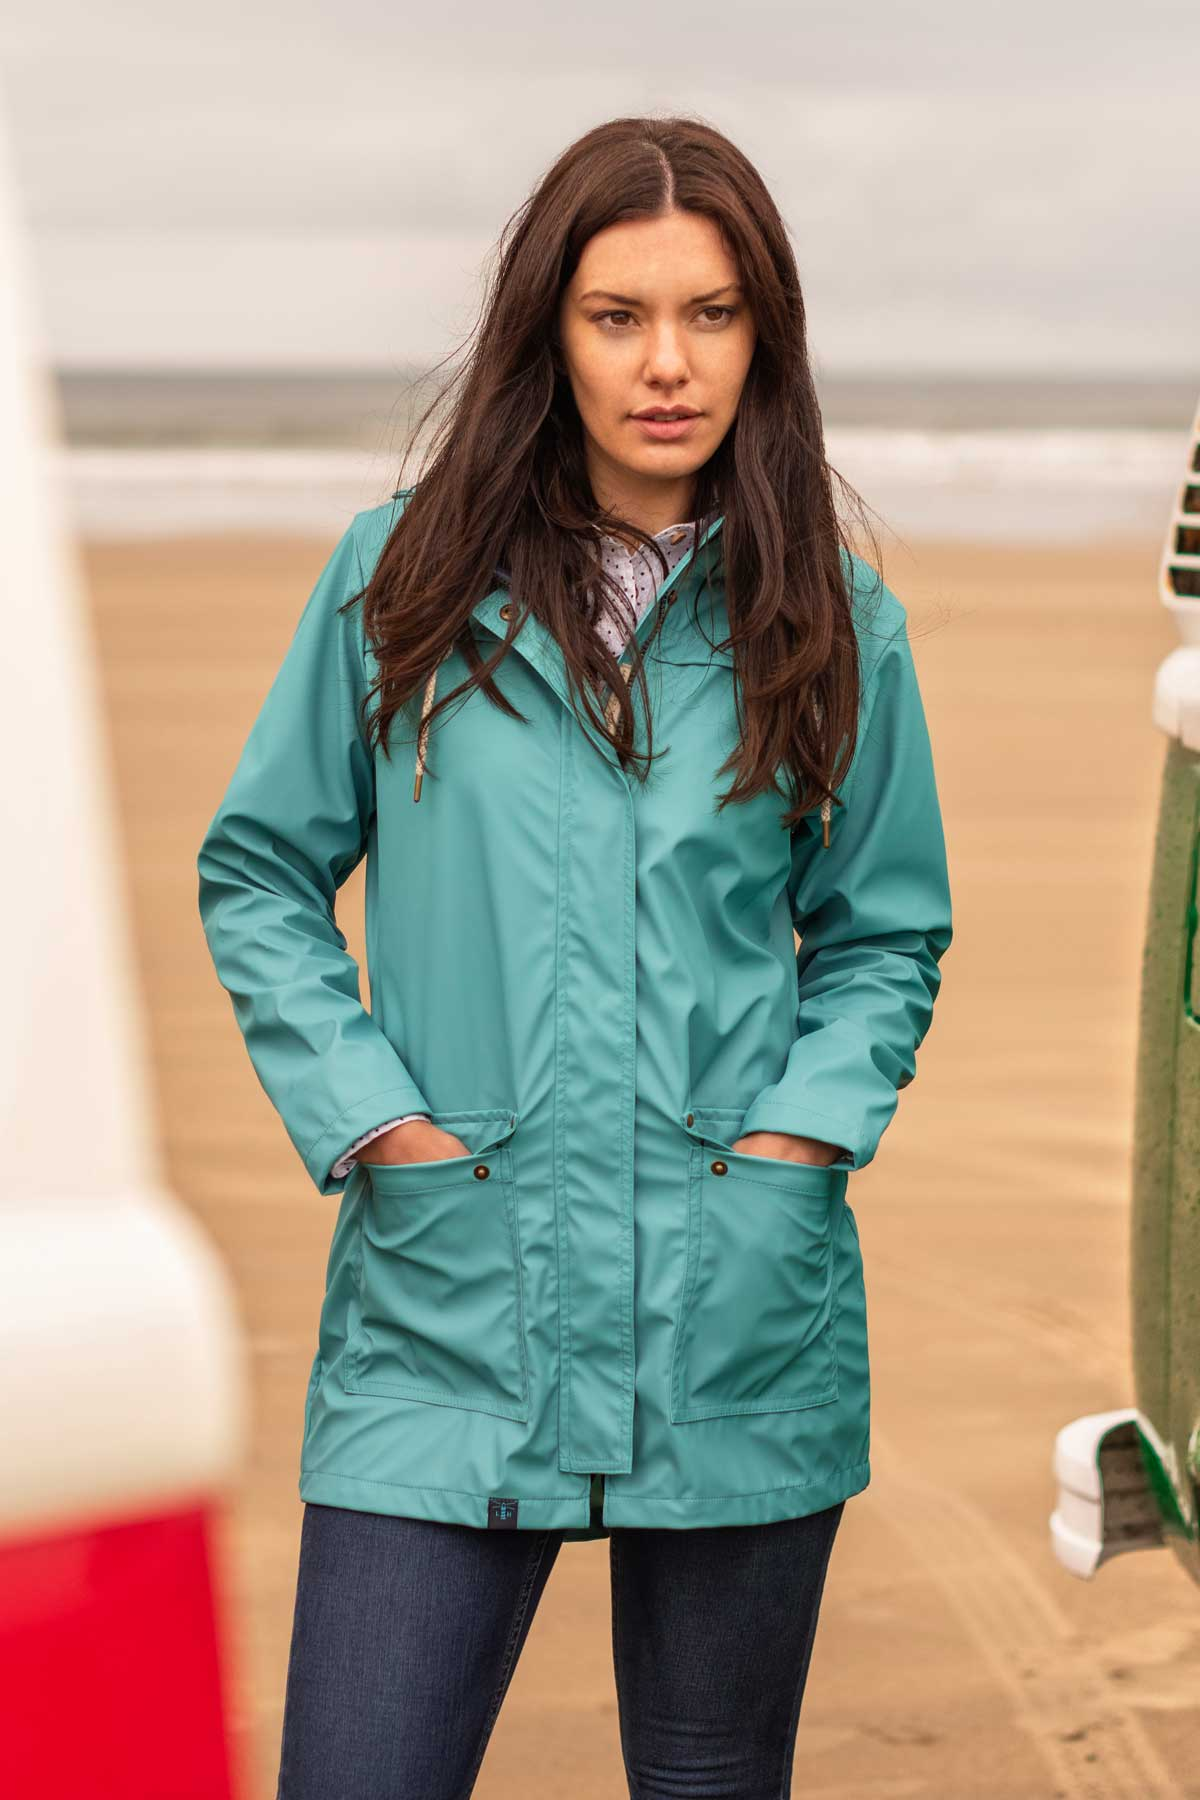 Bowline Jacket - Soft Teal